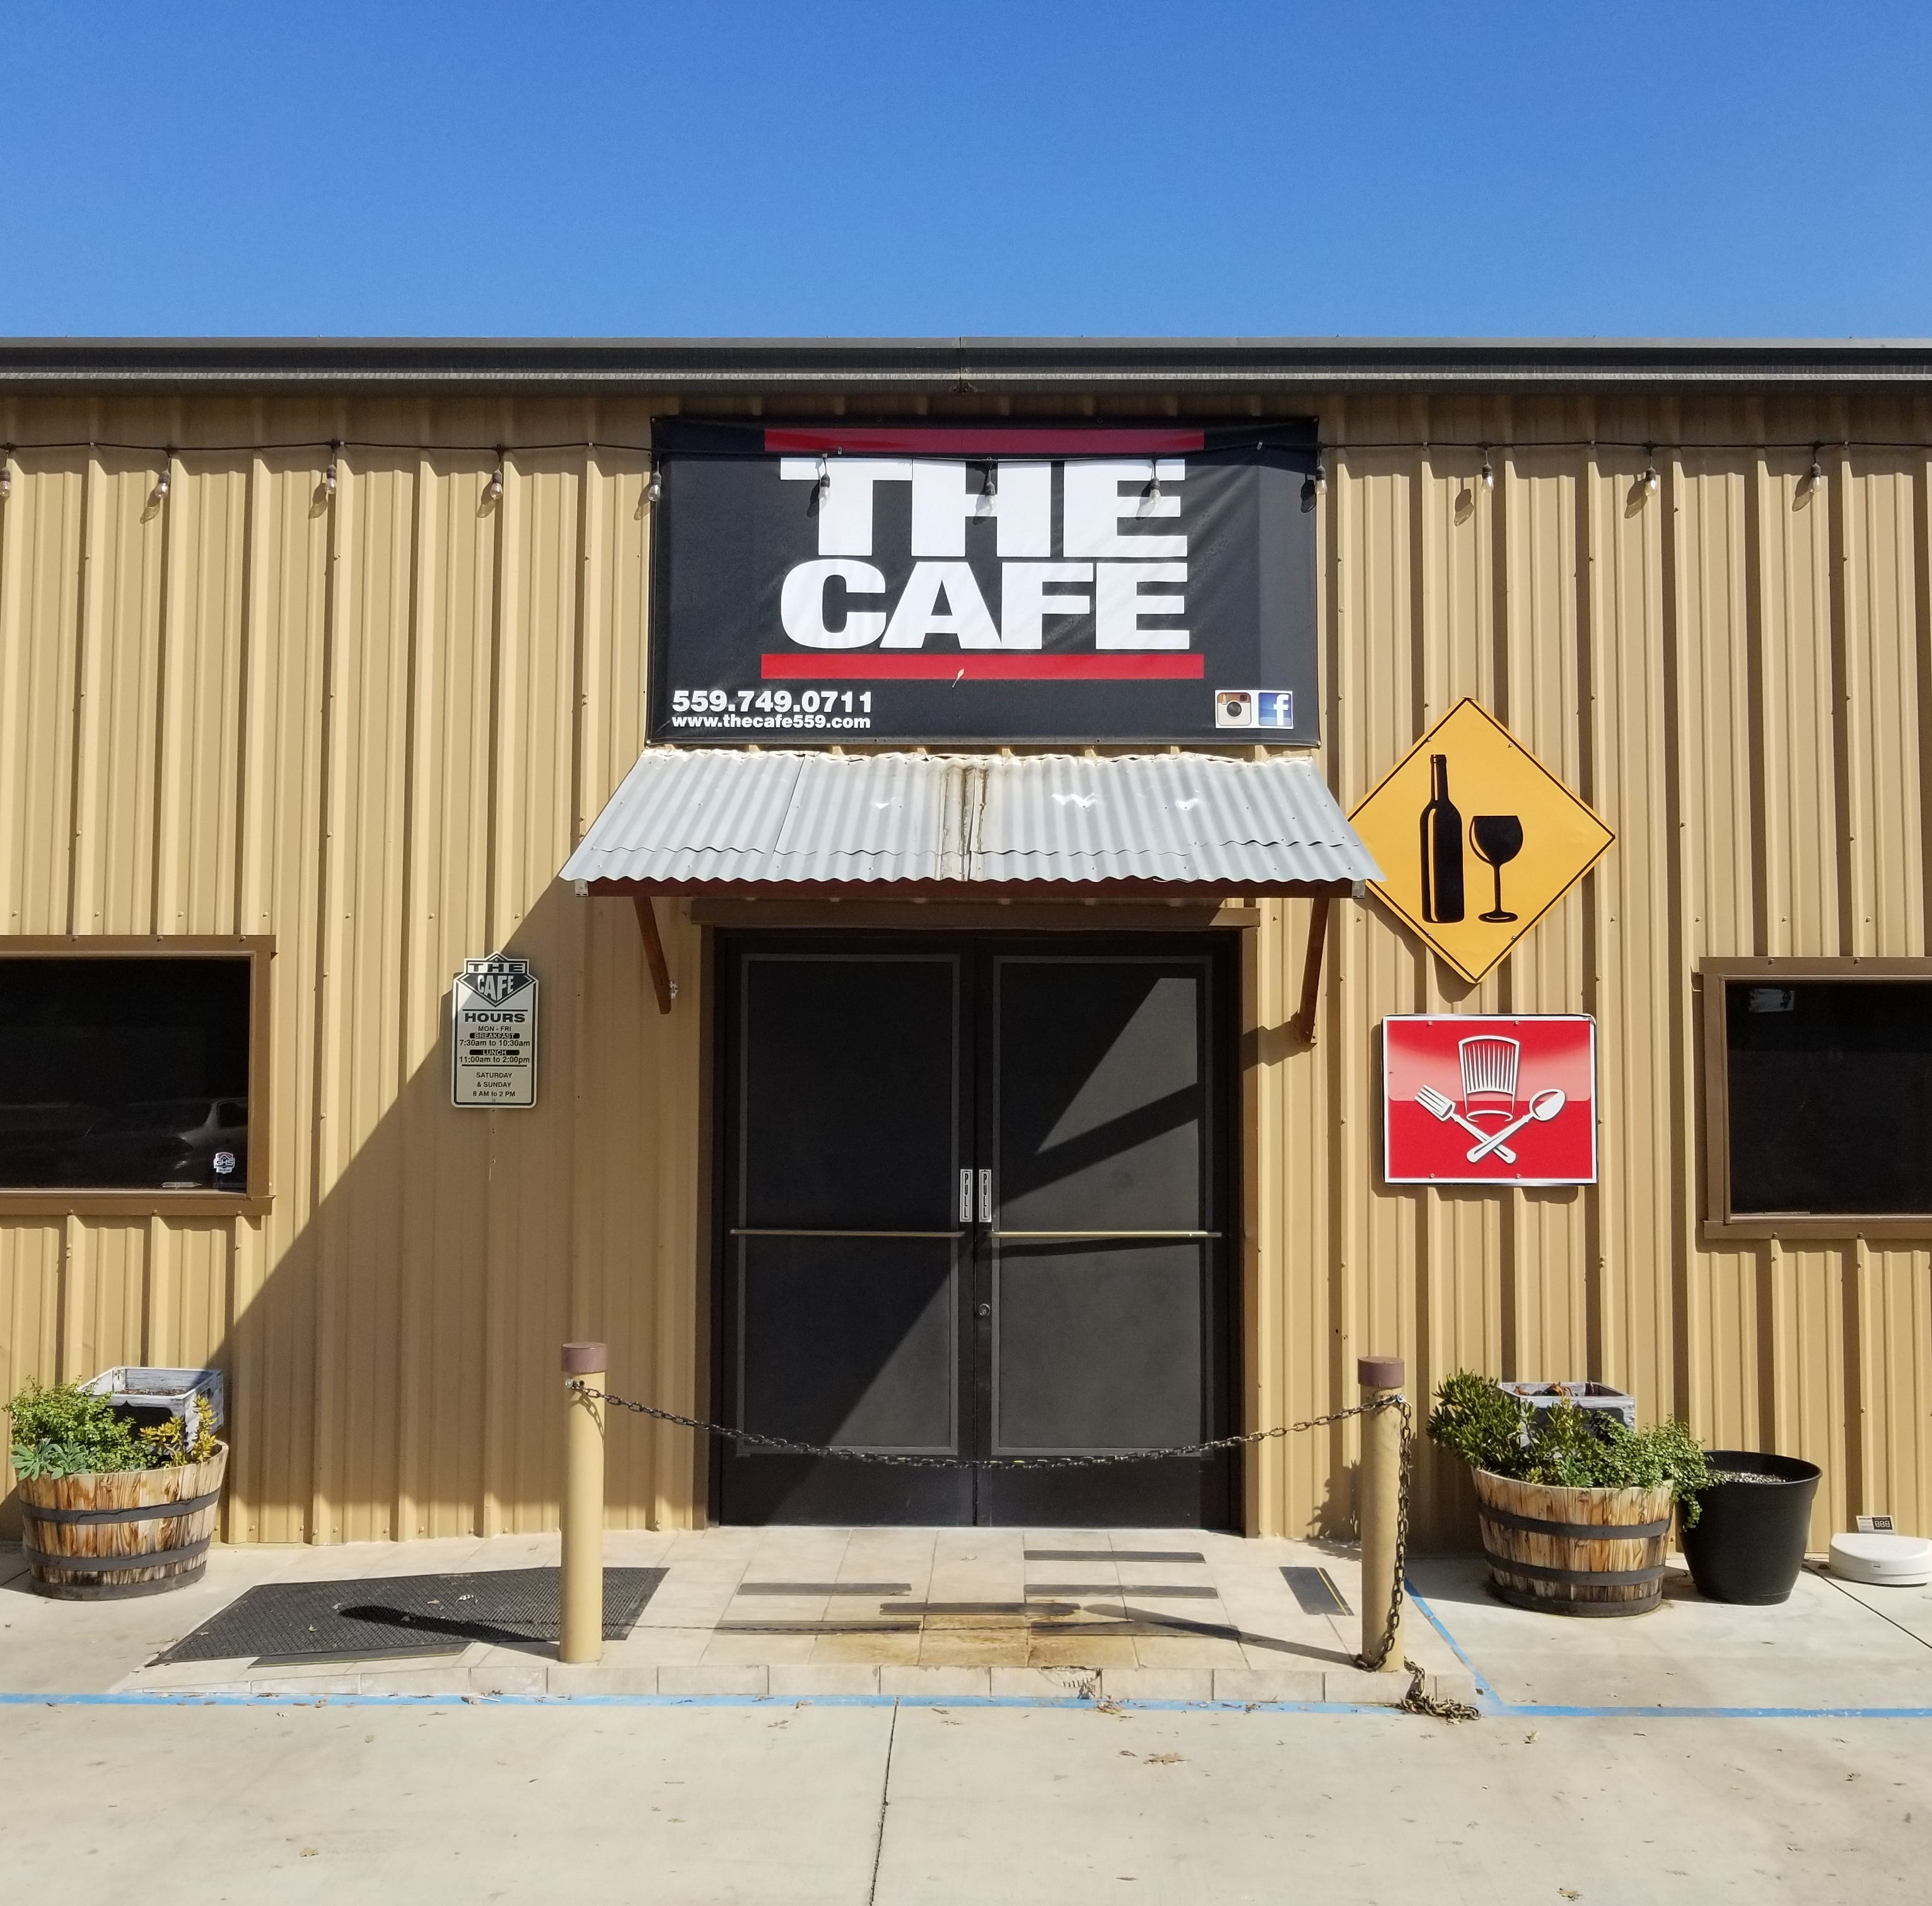 The Cafe calls it quits, 'whole staff blindsided' and unpaid